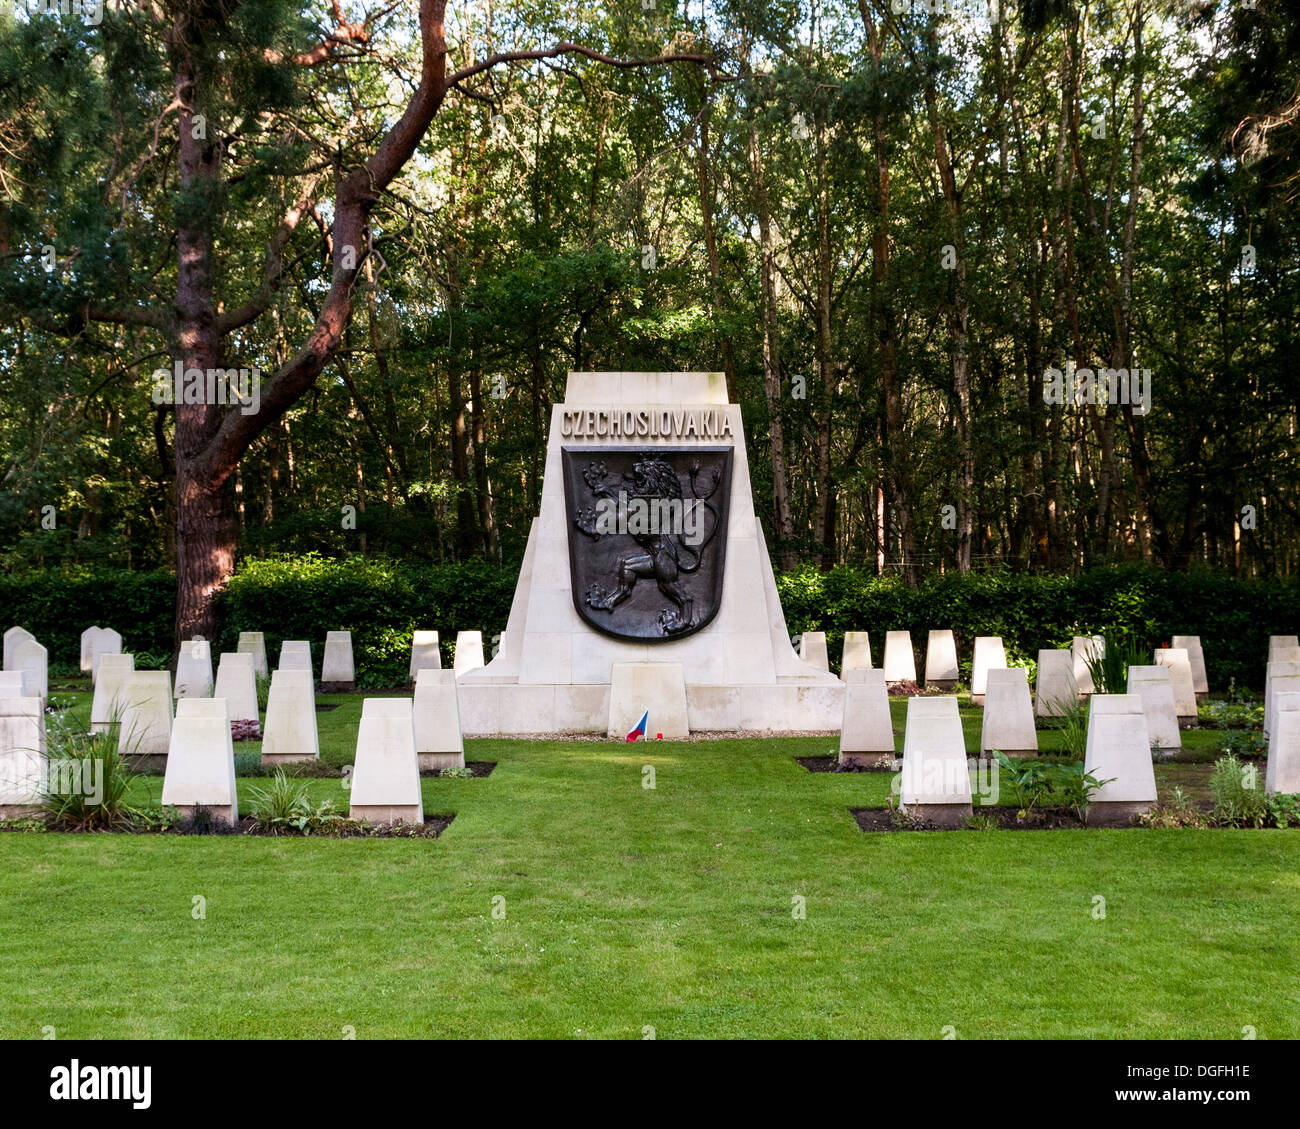 Brookwood Military Cemetery and memorials, Brookwood, United Kingdom. Architect: unknown, 2013. Czechoslovakia memorial. Stock Photo